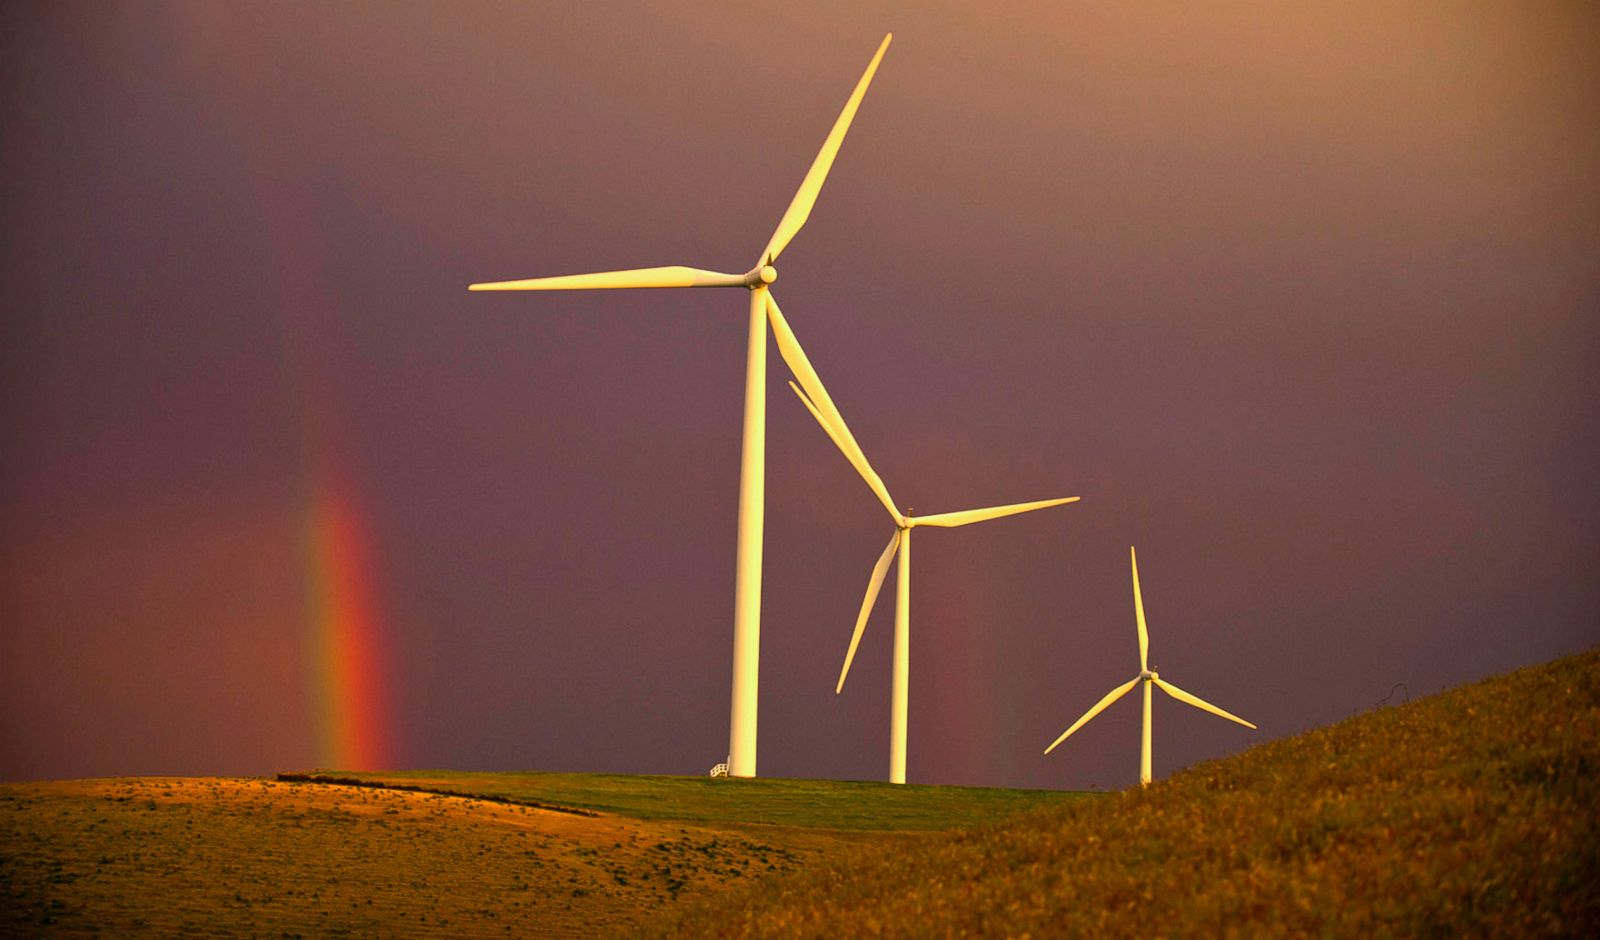 Wind turbine research papers